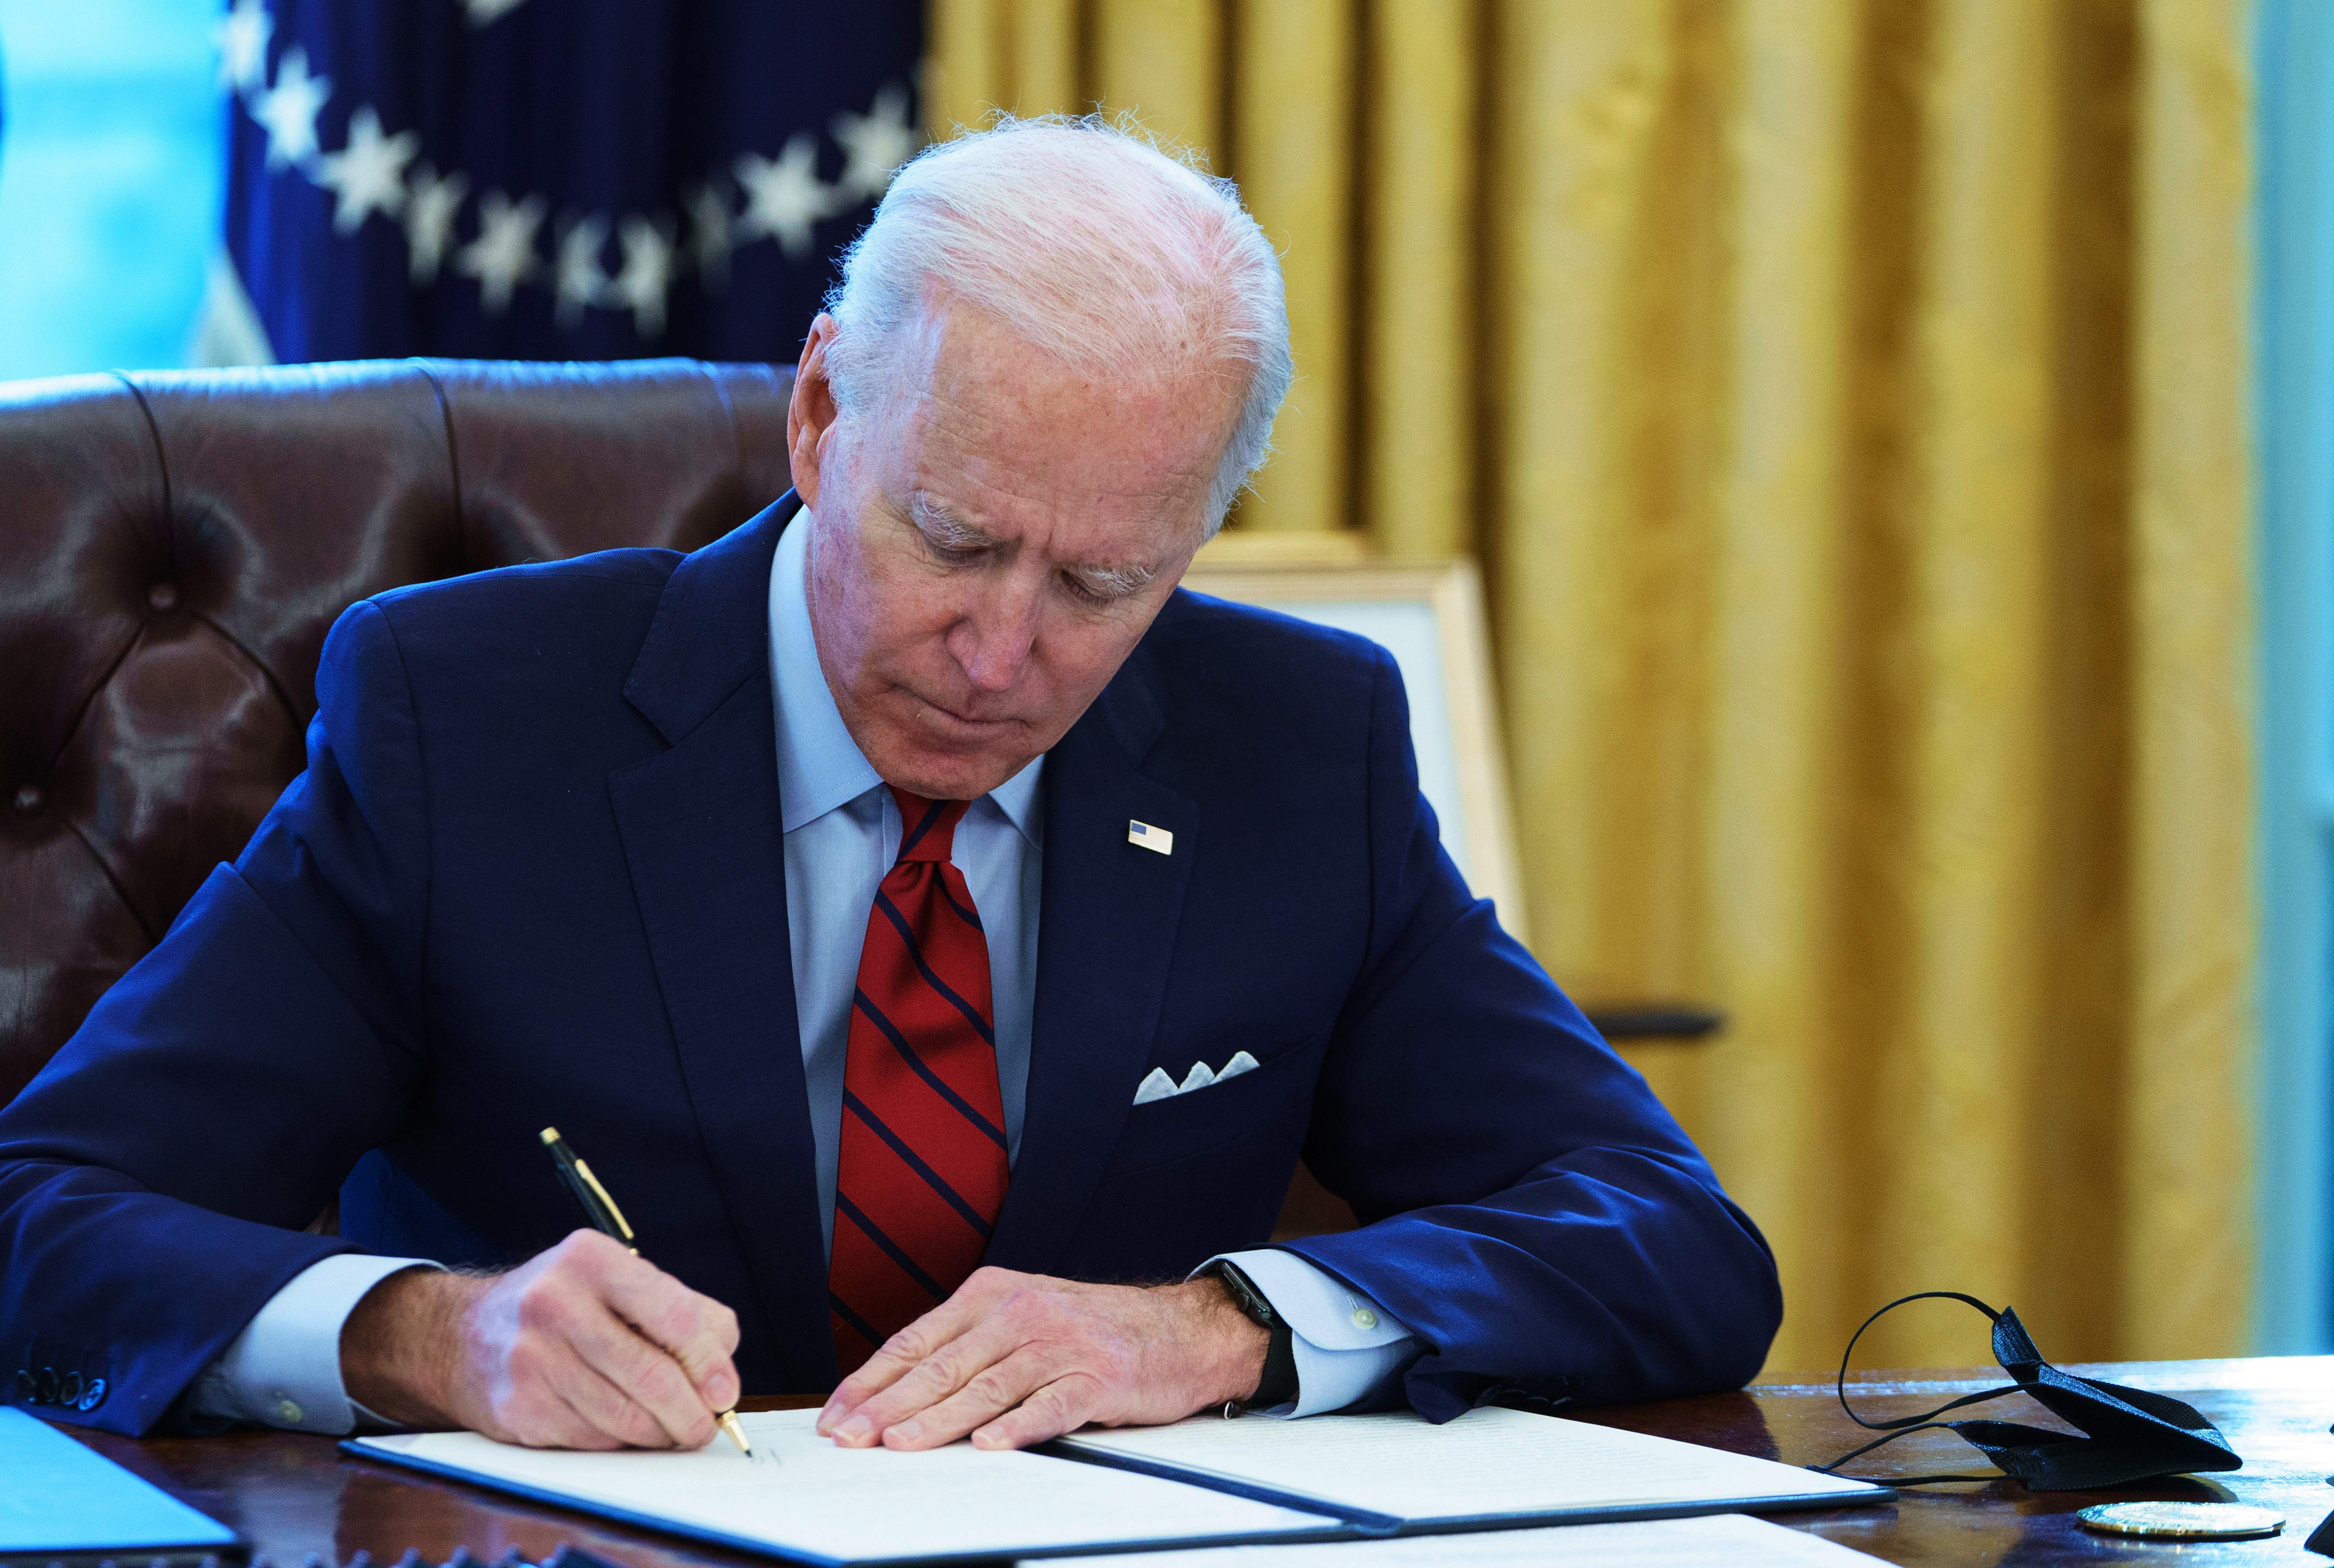 Biden using executive orders to overturn 'immoral' policies of Trump administration